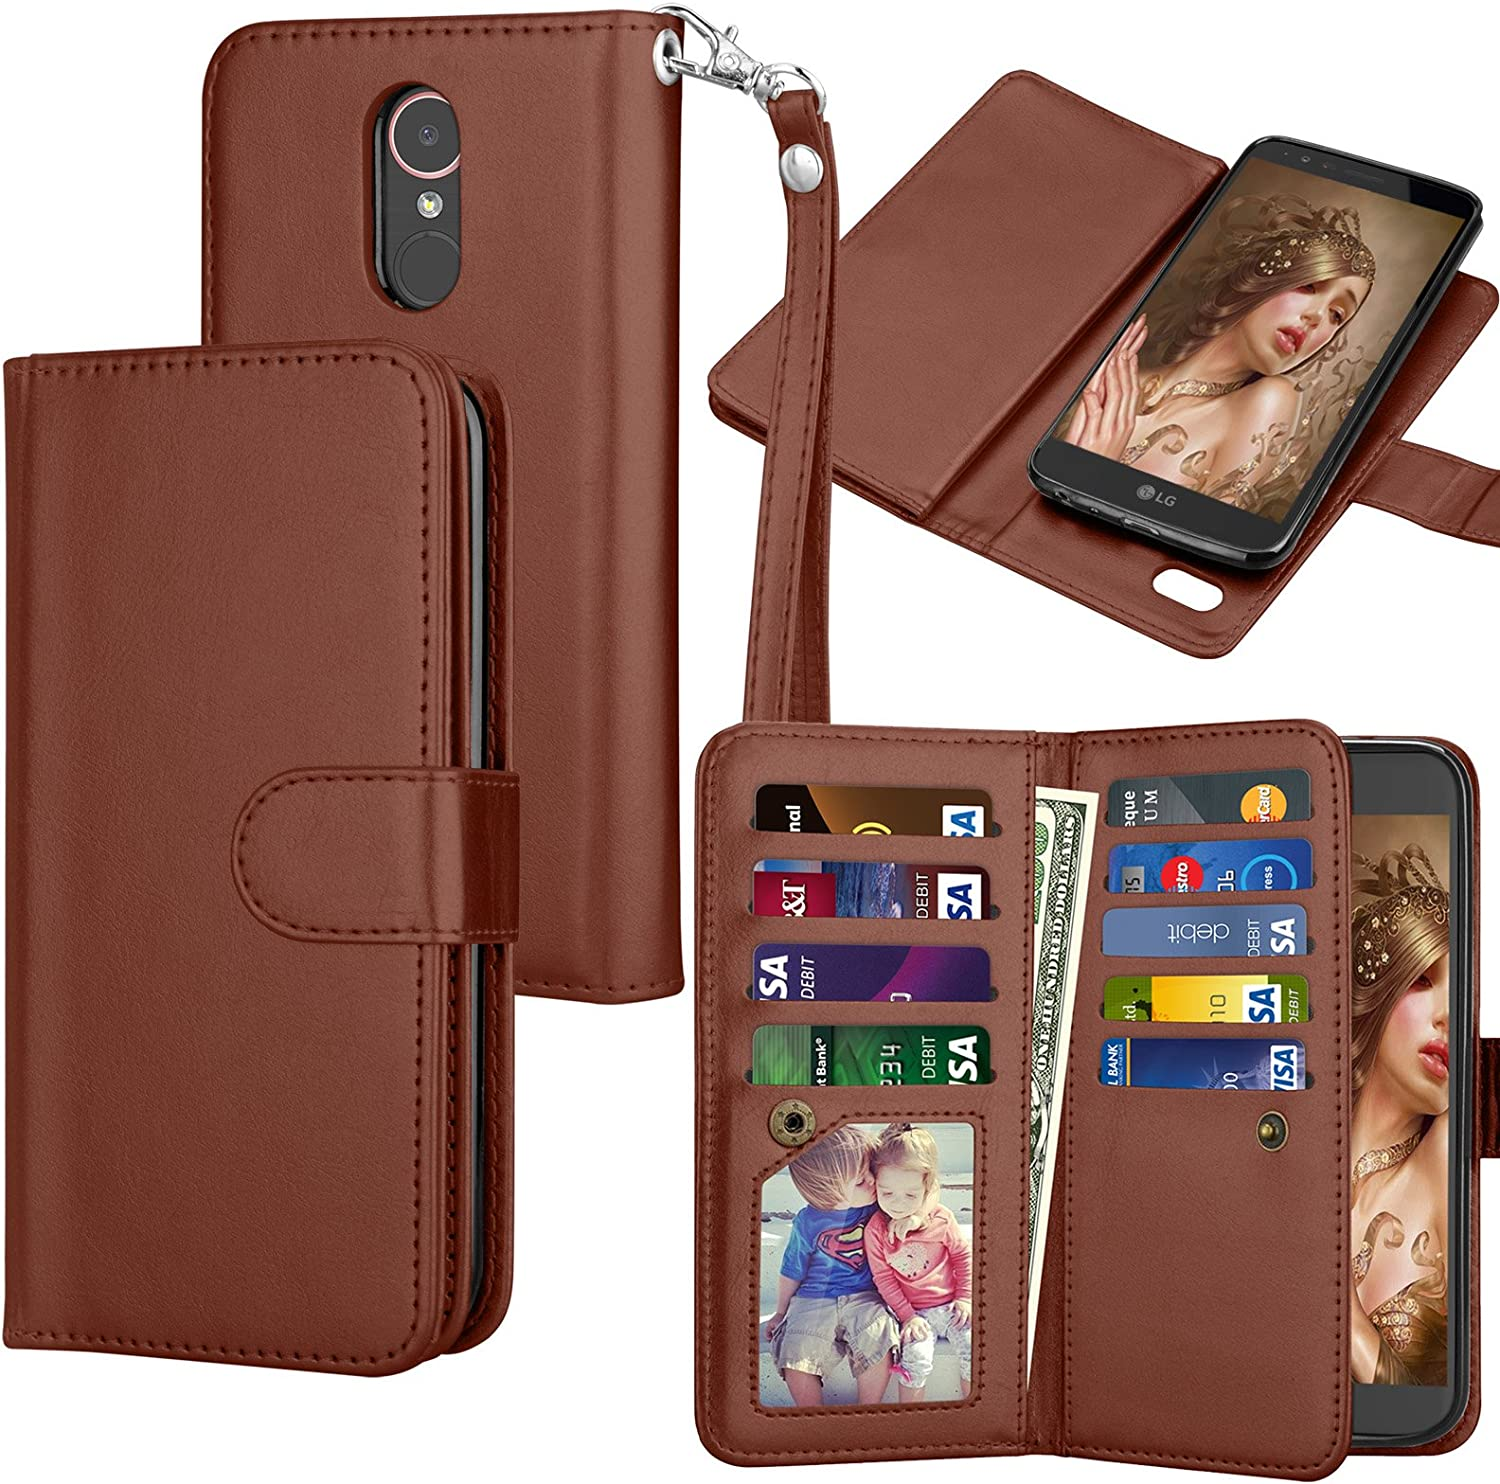 Tekcoo for LG Stylo 3 Wallet Case/LG Stylo 3 Plus/LG Stylus 3 PU Leather Case, Luxury ID Cash Credit Card Slots Holder Carrying Flip Folio Cover [Detachable Magnetic Hard Case] -Brown